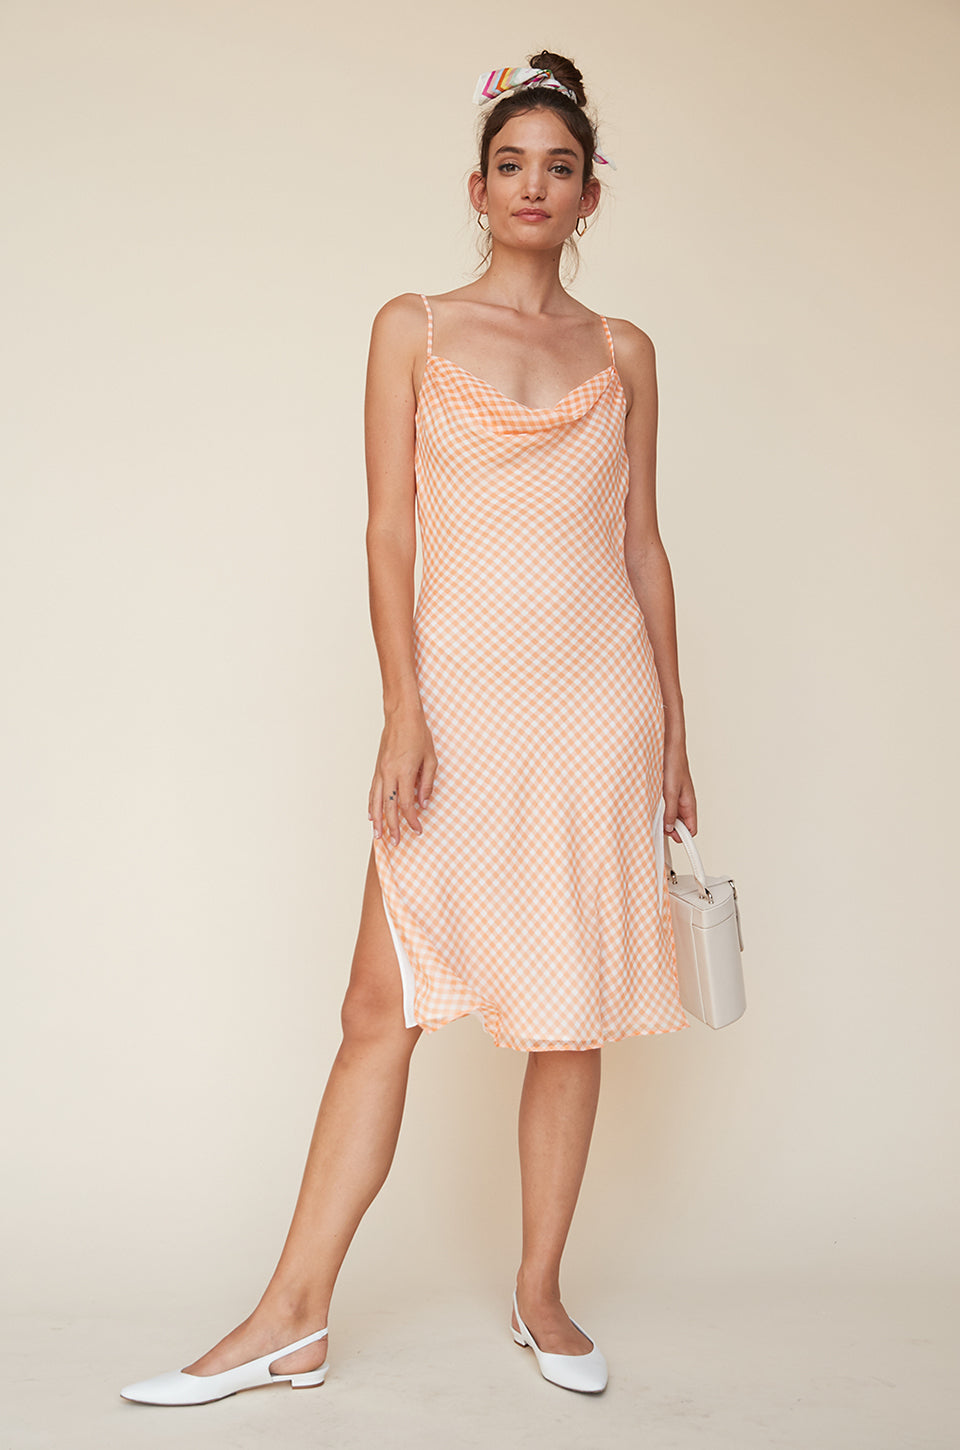 926394a4d53 Cowl Neck Dress with Slits